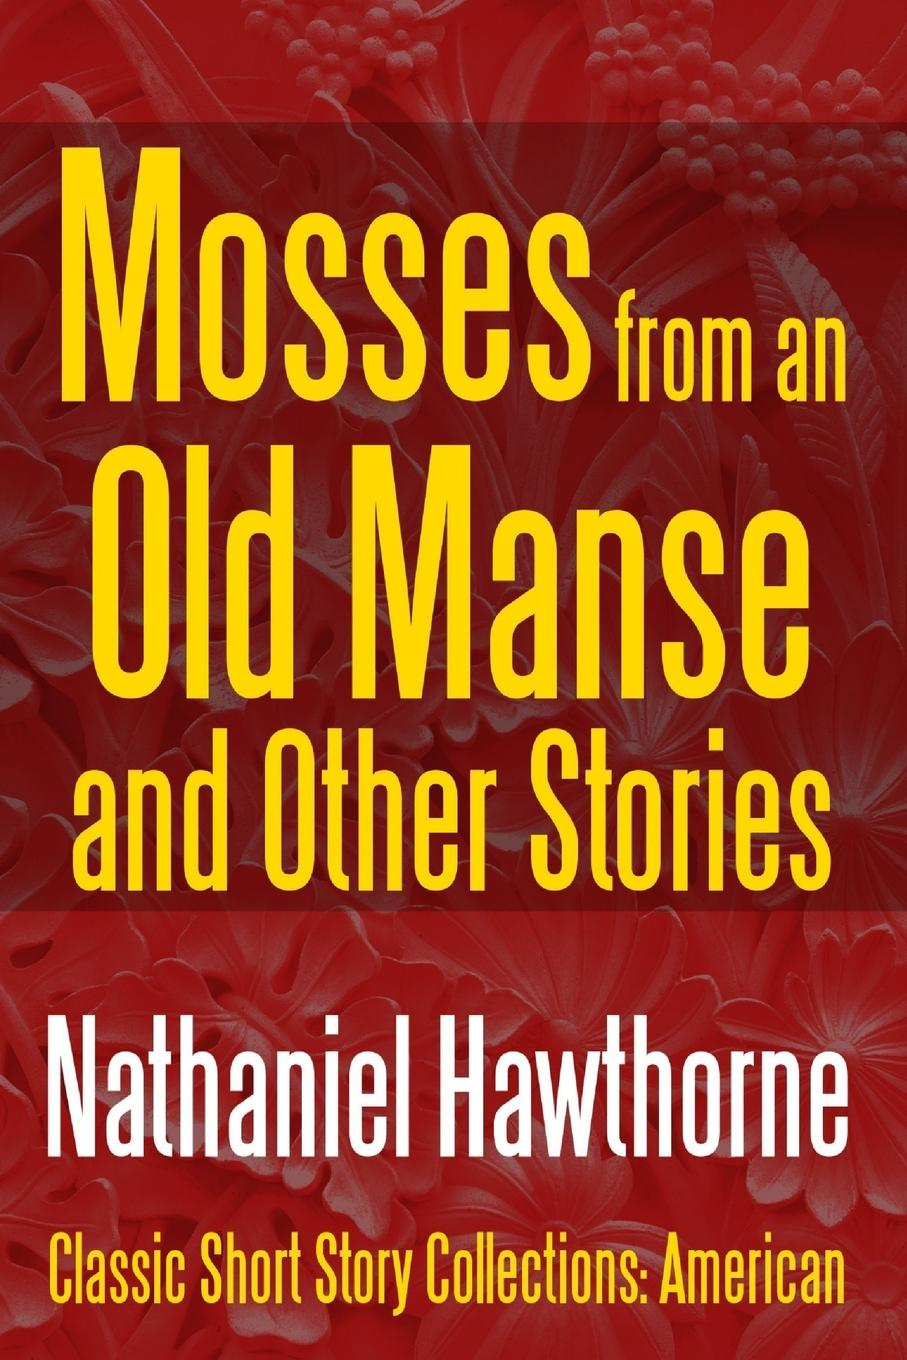 Hawthorne Nathaniel Mosses from an Old Manse and Other Stories hawthorne nathaniel mosses from an old manse and other stories